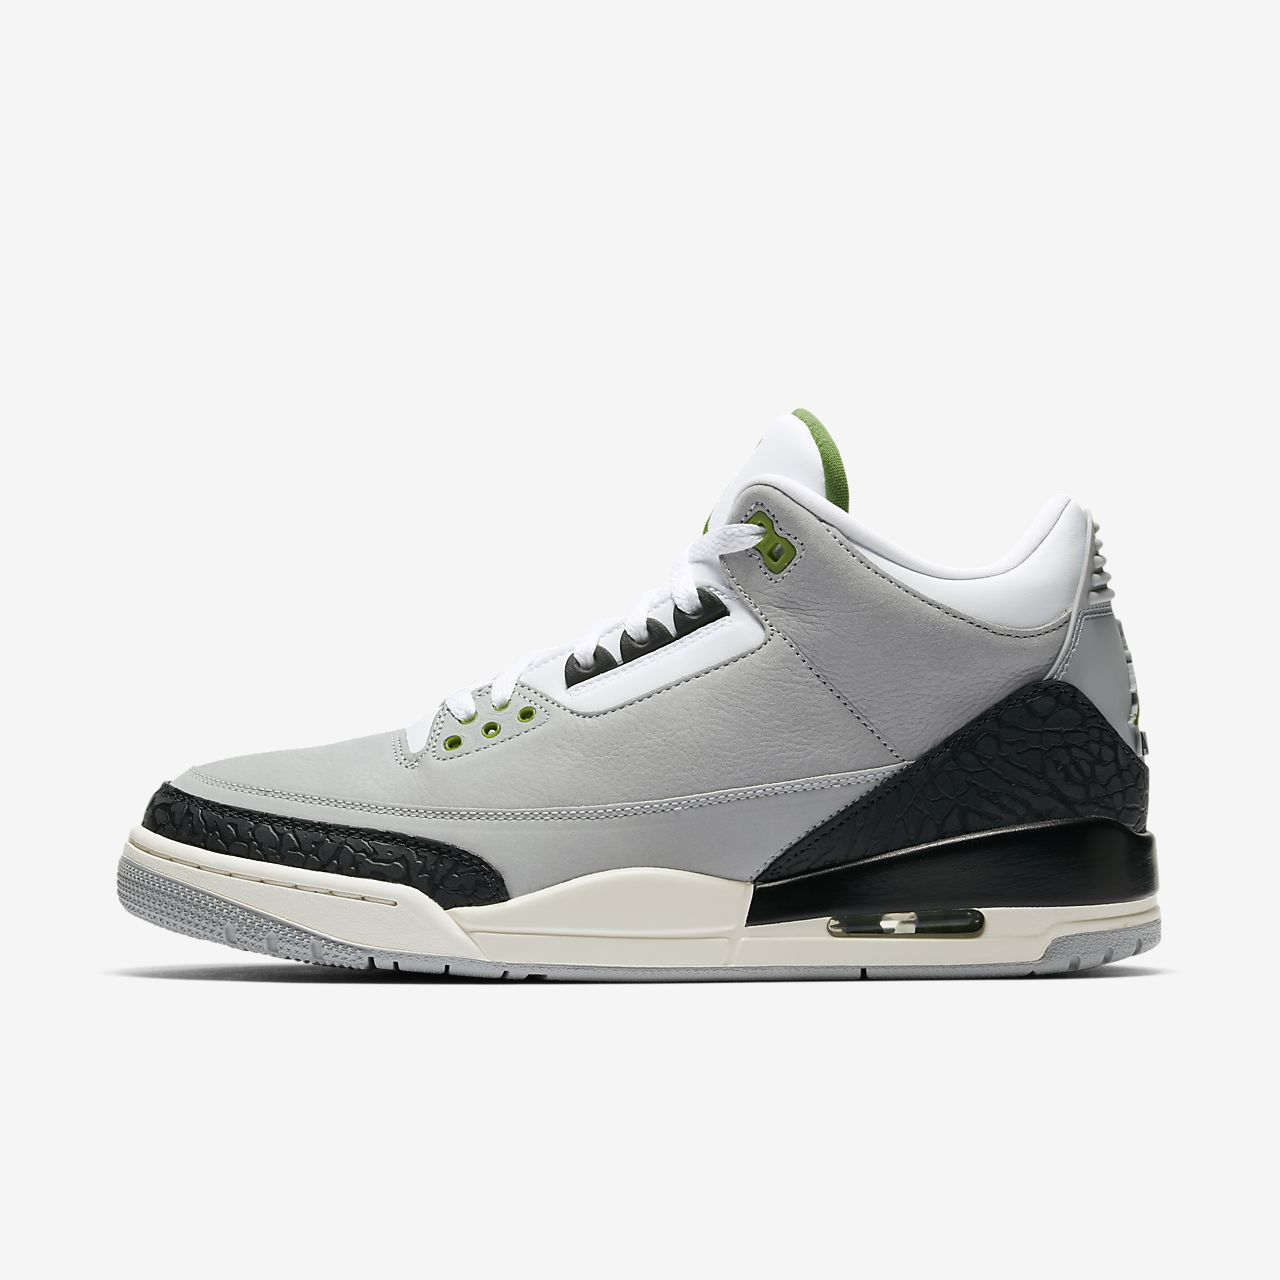 b59caf987418 Air Jordan 3 Retro Men s Shoe. Nike.com GB